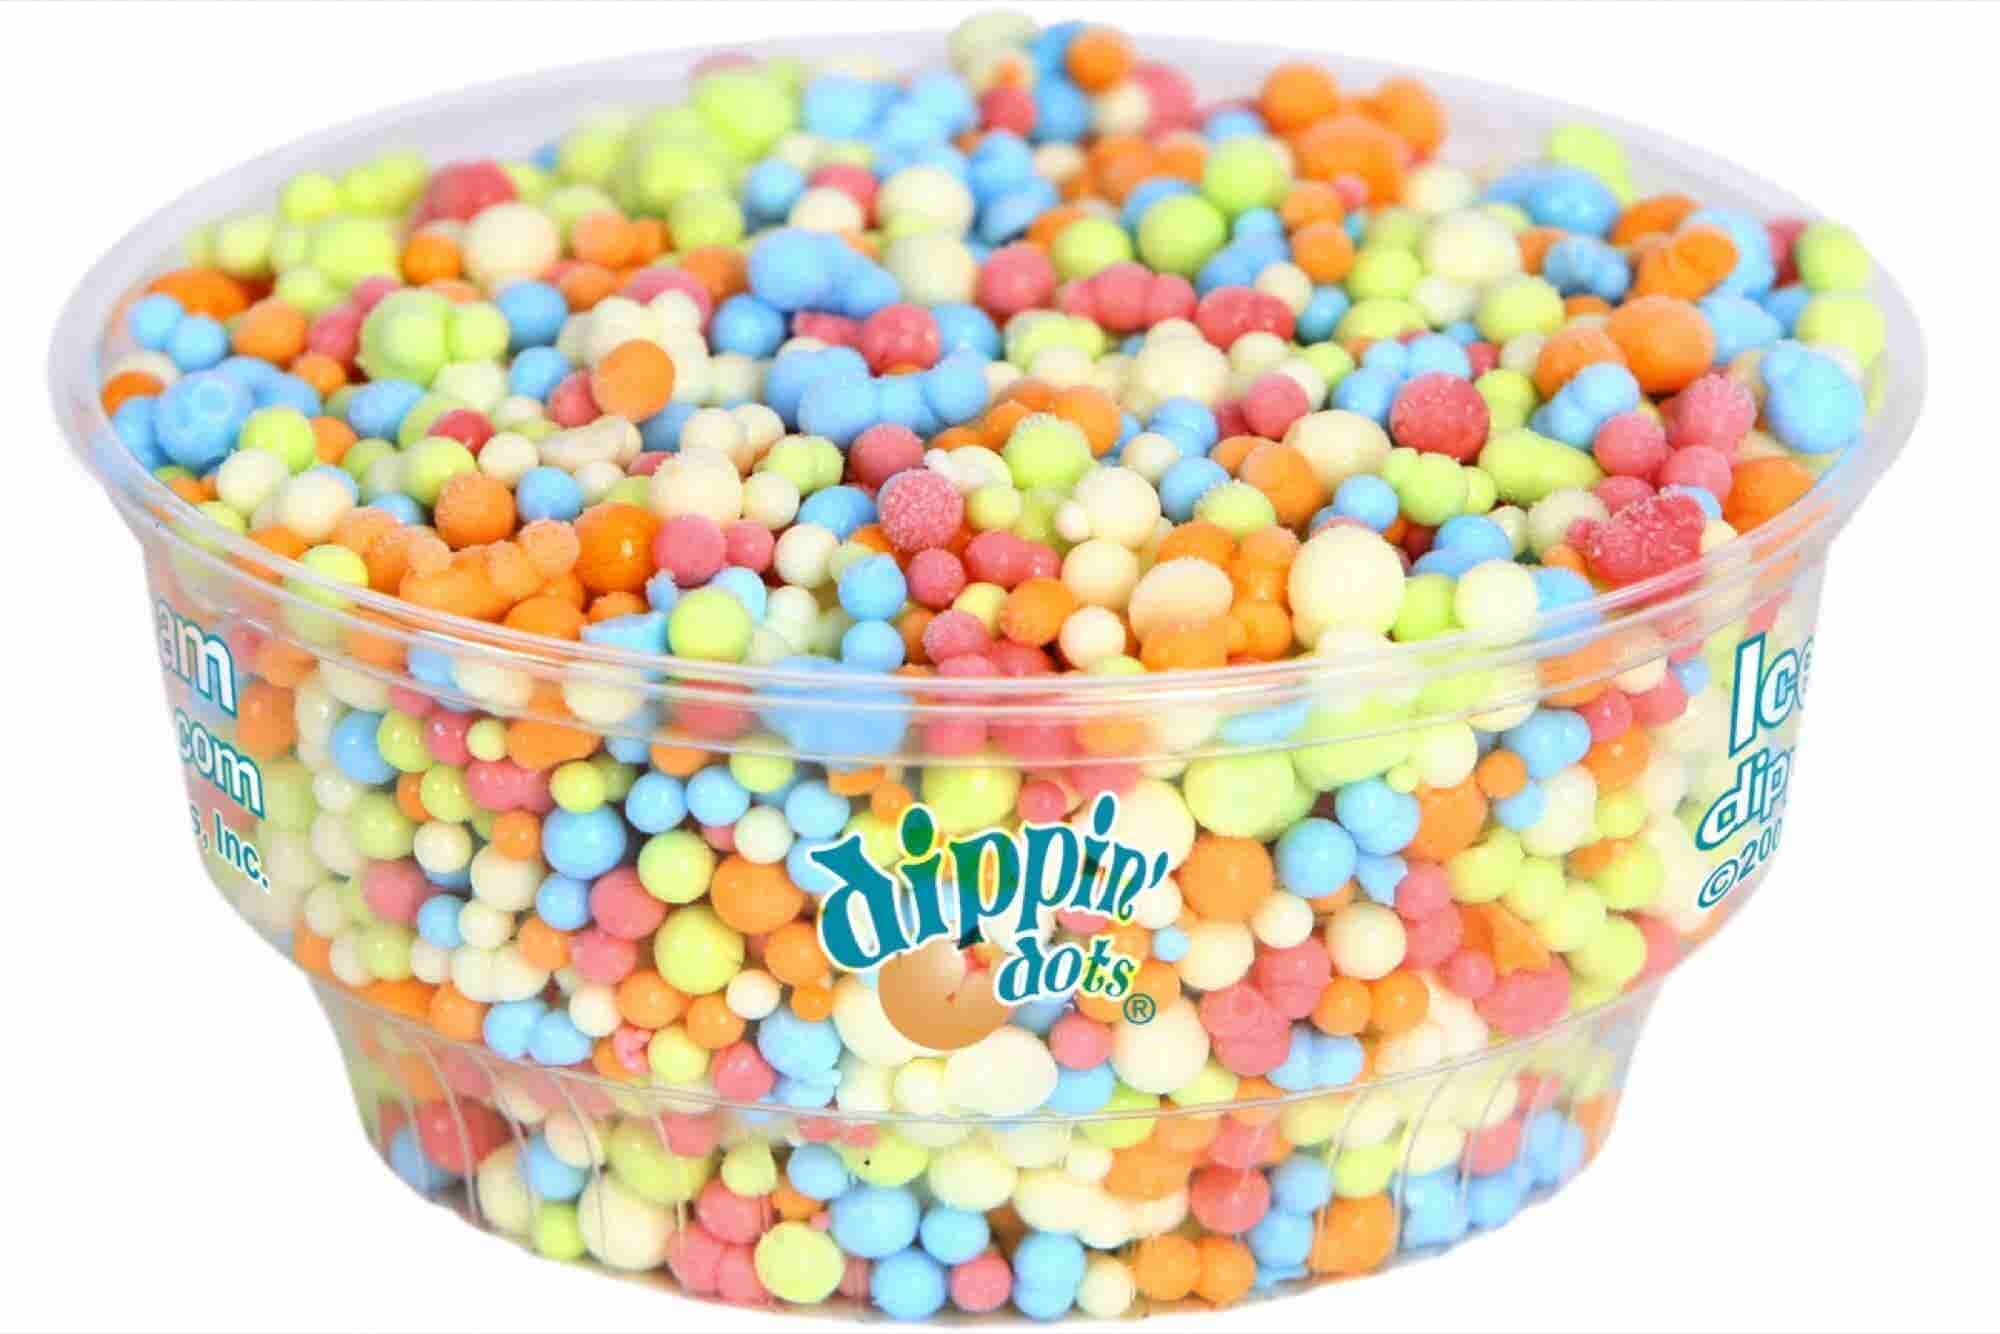 How Dippin' Dots Made the Most of Unexpected Attention From the White House Press Secretary